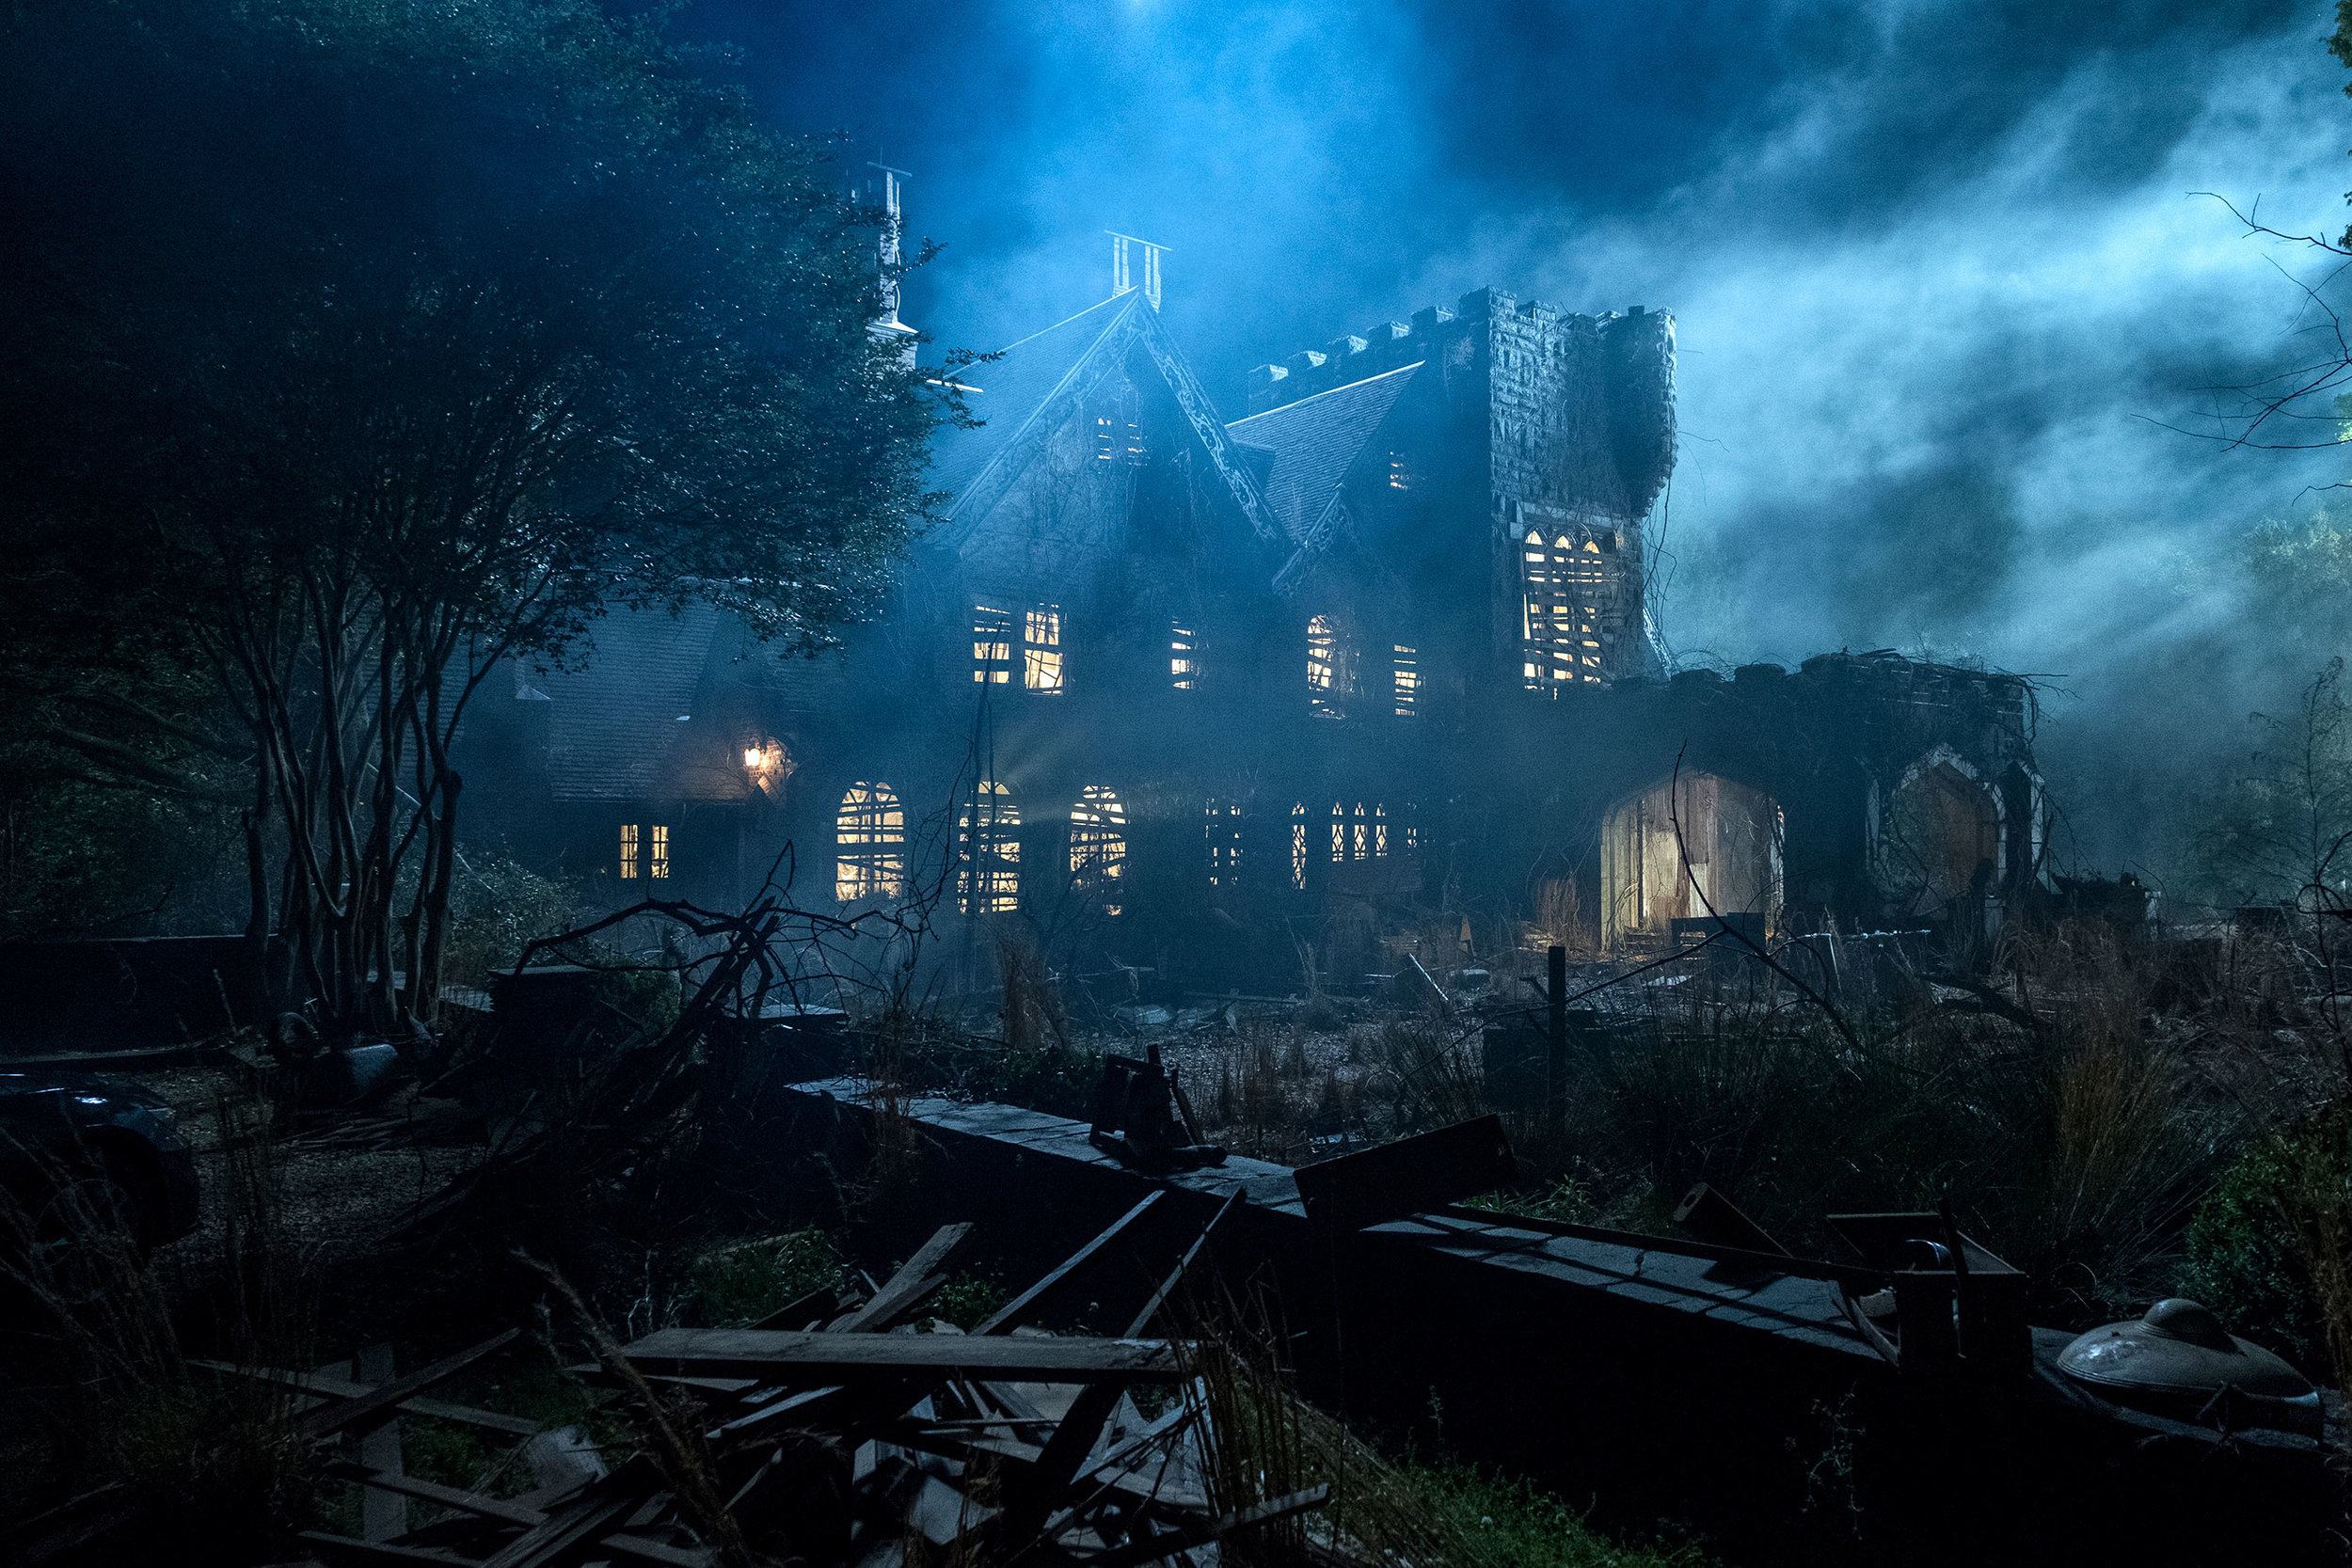 teaser-trailer-and-photos-from-netflixs-the-haunting-of-hill-house5.jpeg